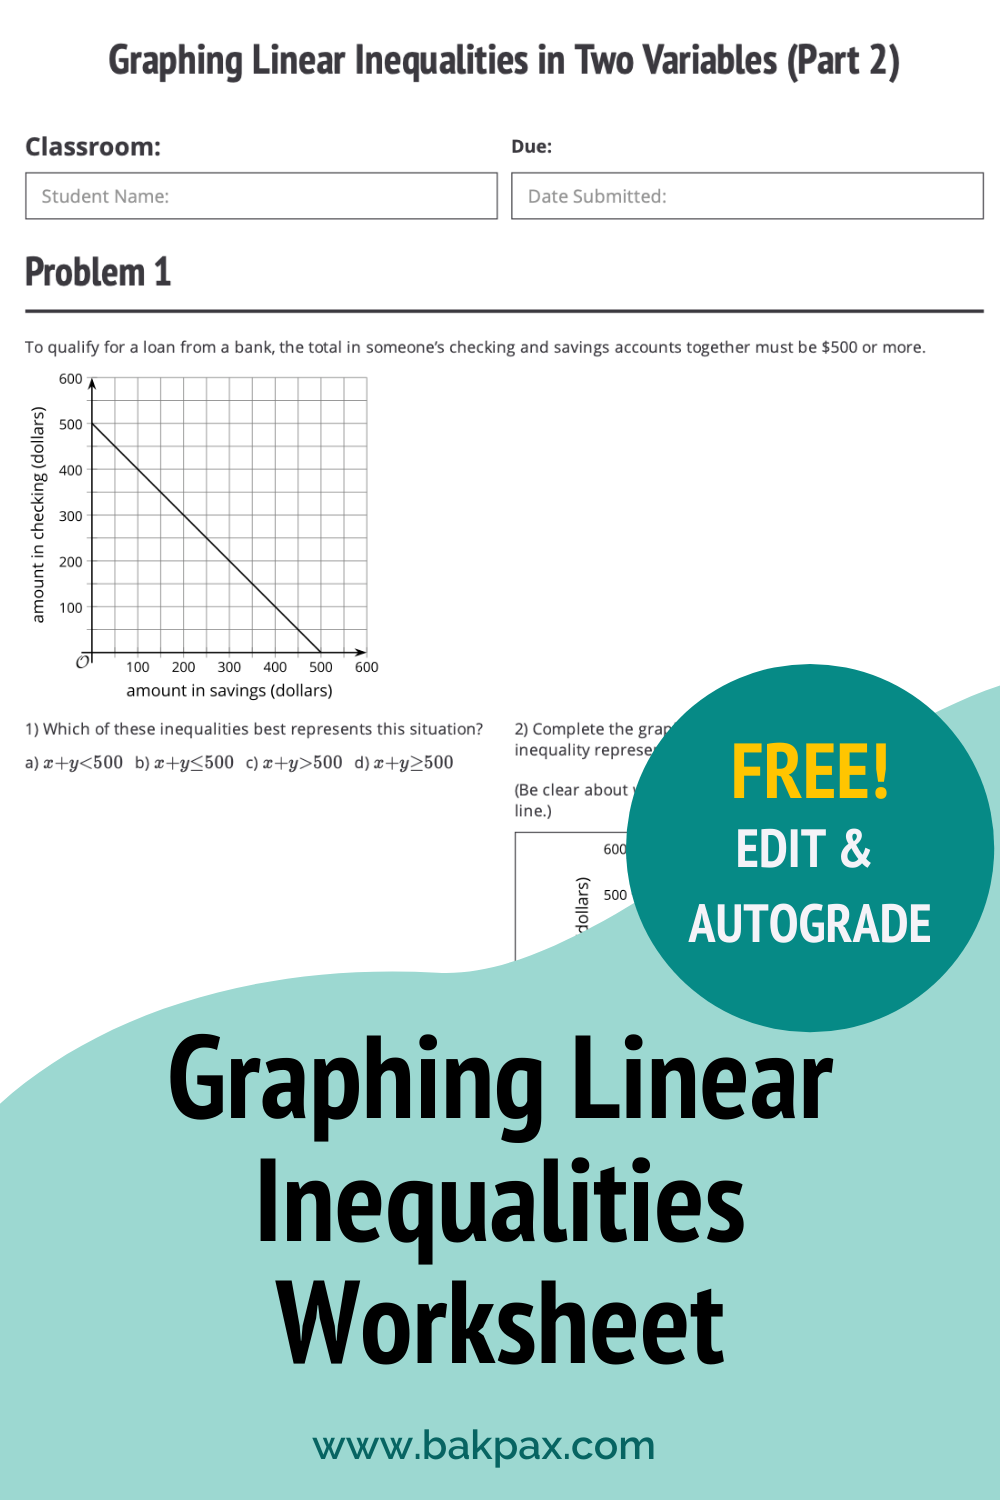 Free Graphing Linear Inequalities Algebra 1 Worksheet in